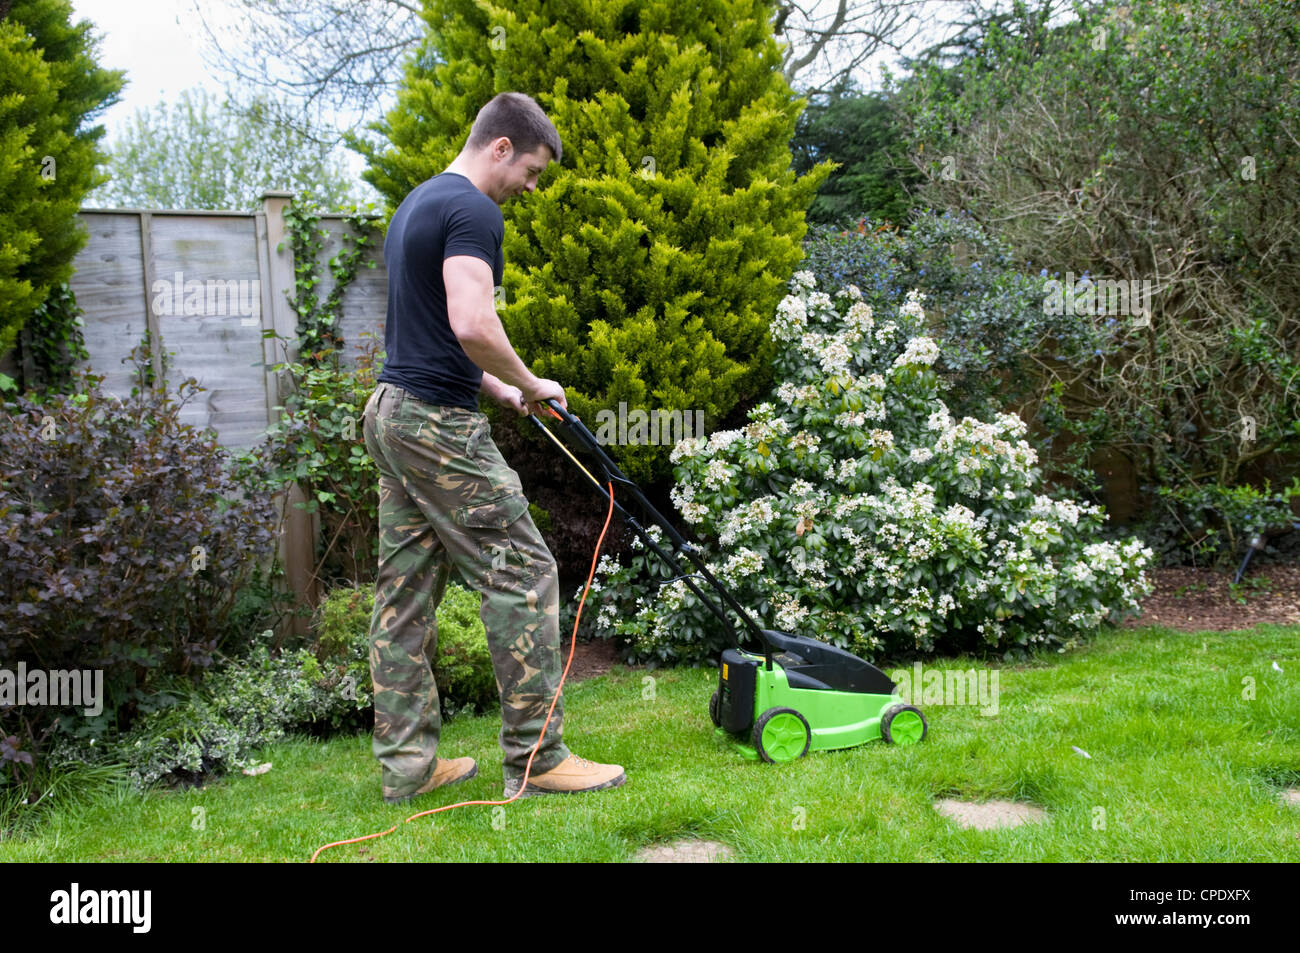 Caucasian man mowing lawn in garden in Bristol, UK - Stock Image